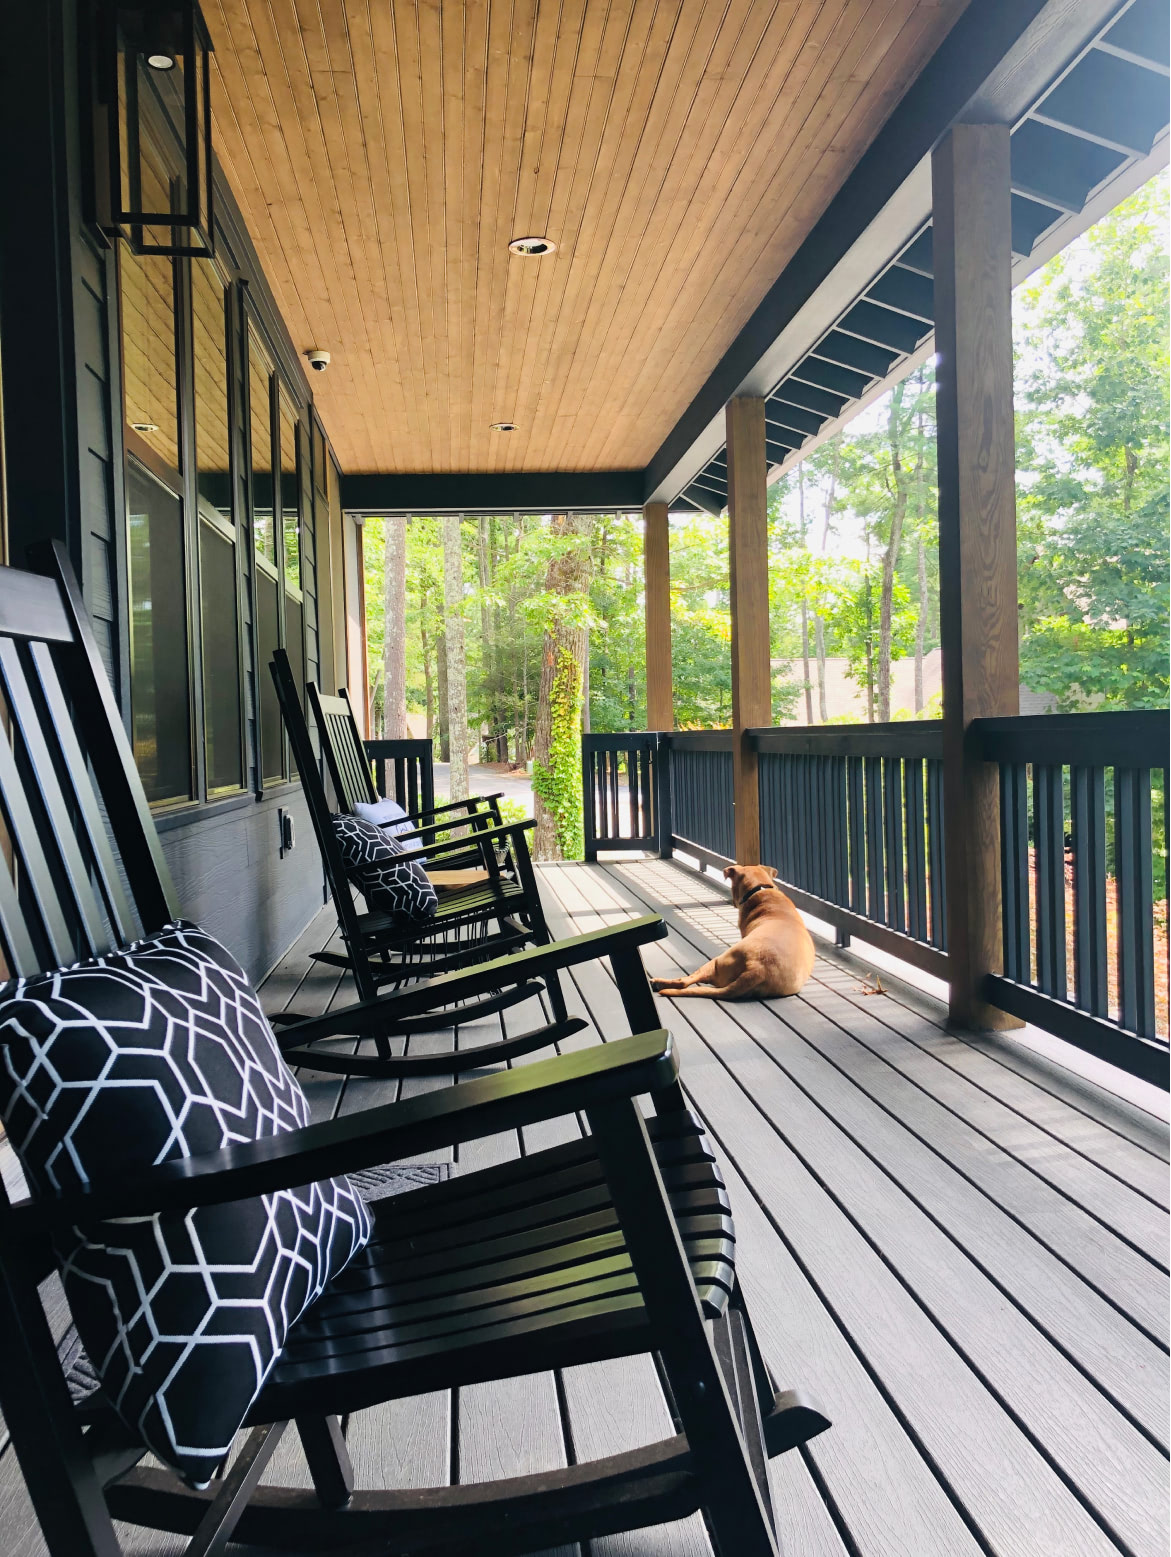 Lake Cove porch with family dog